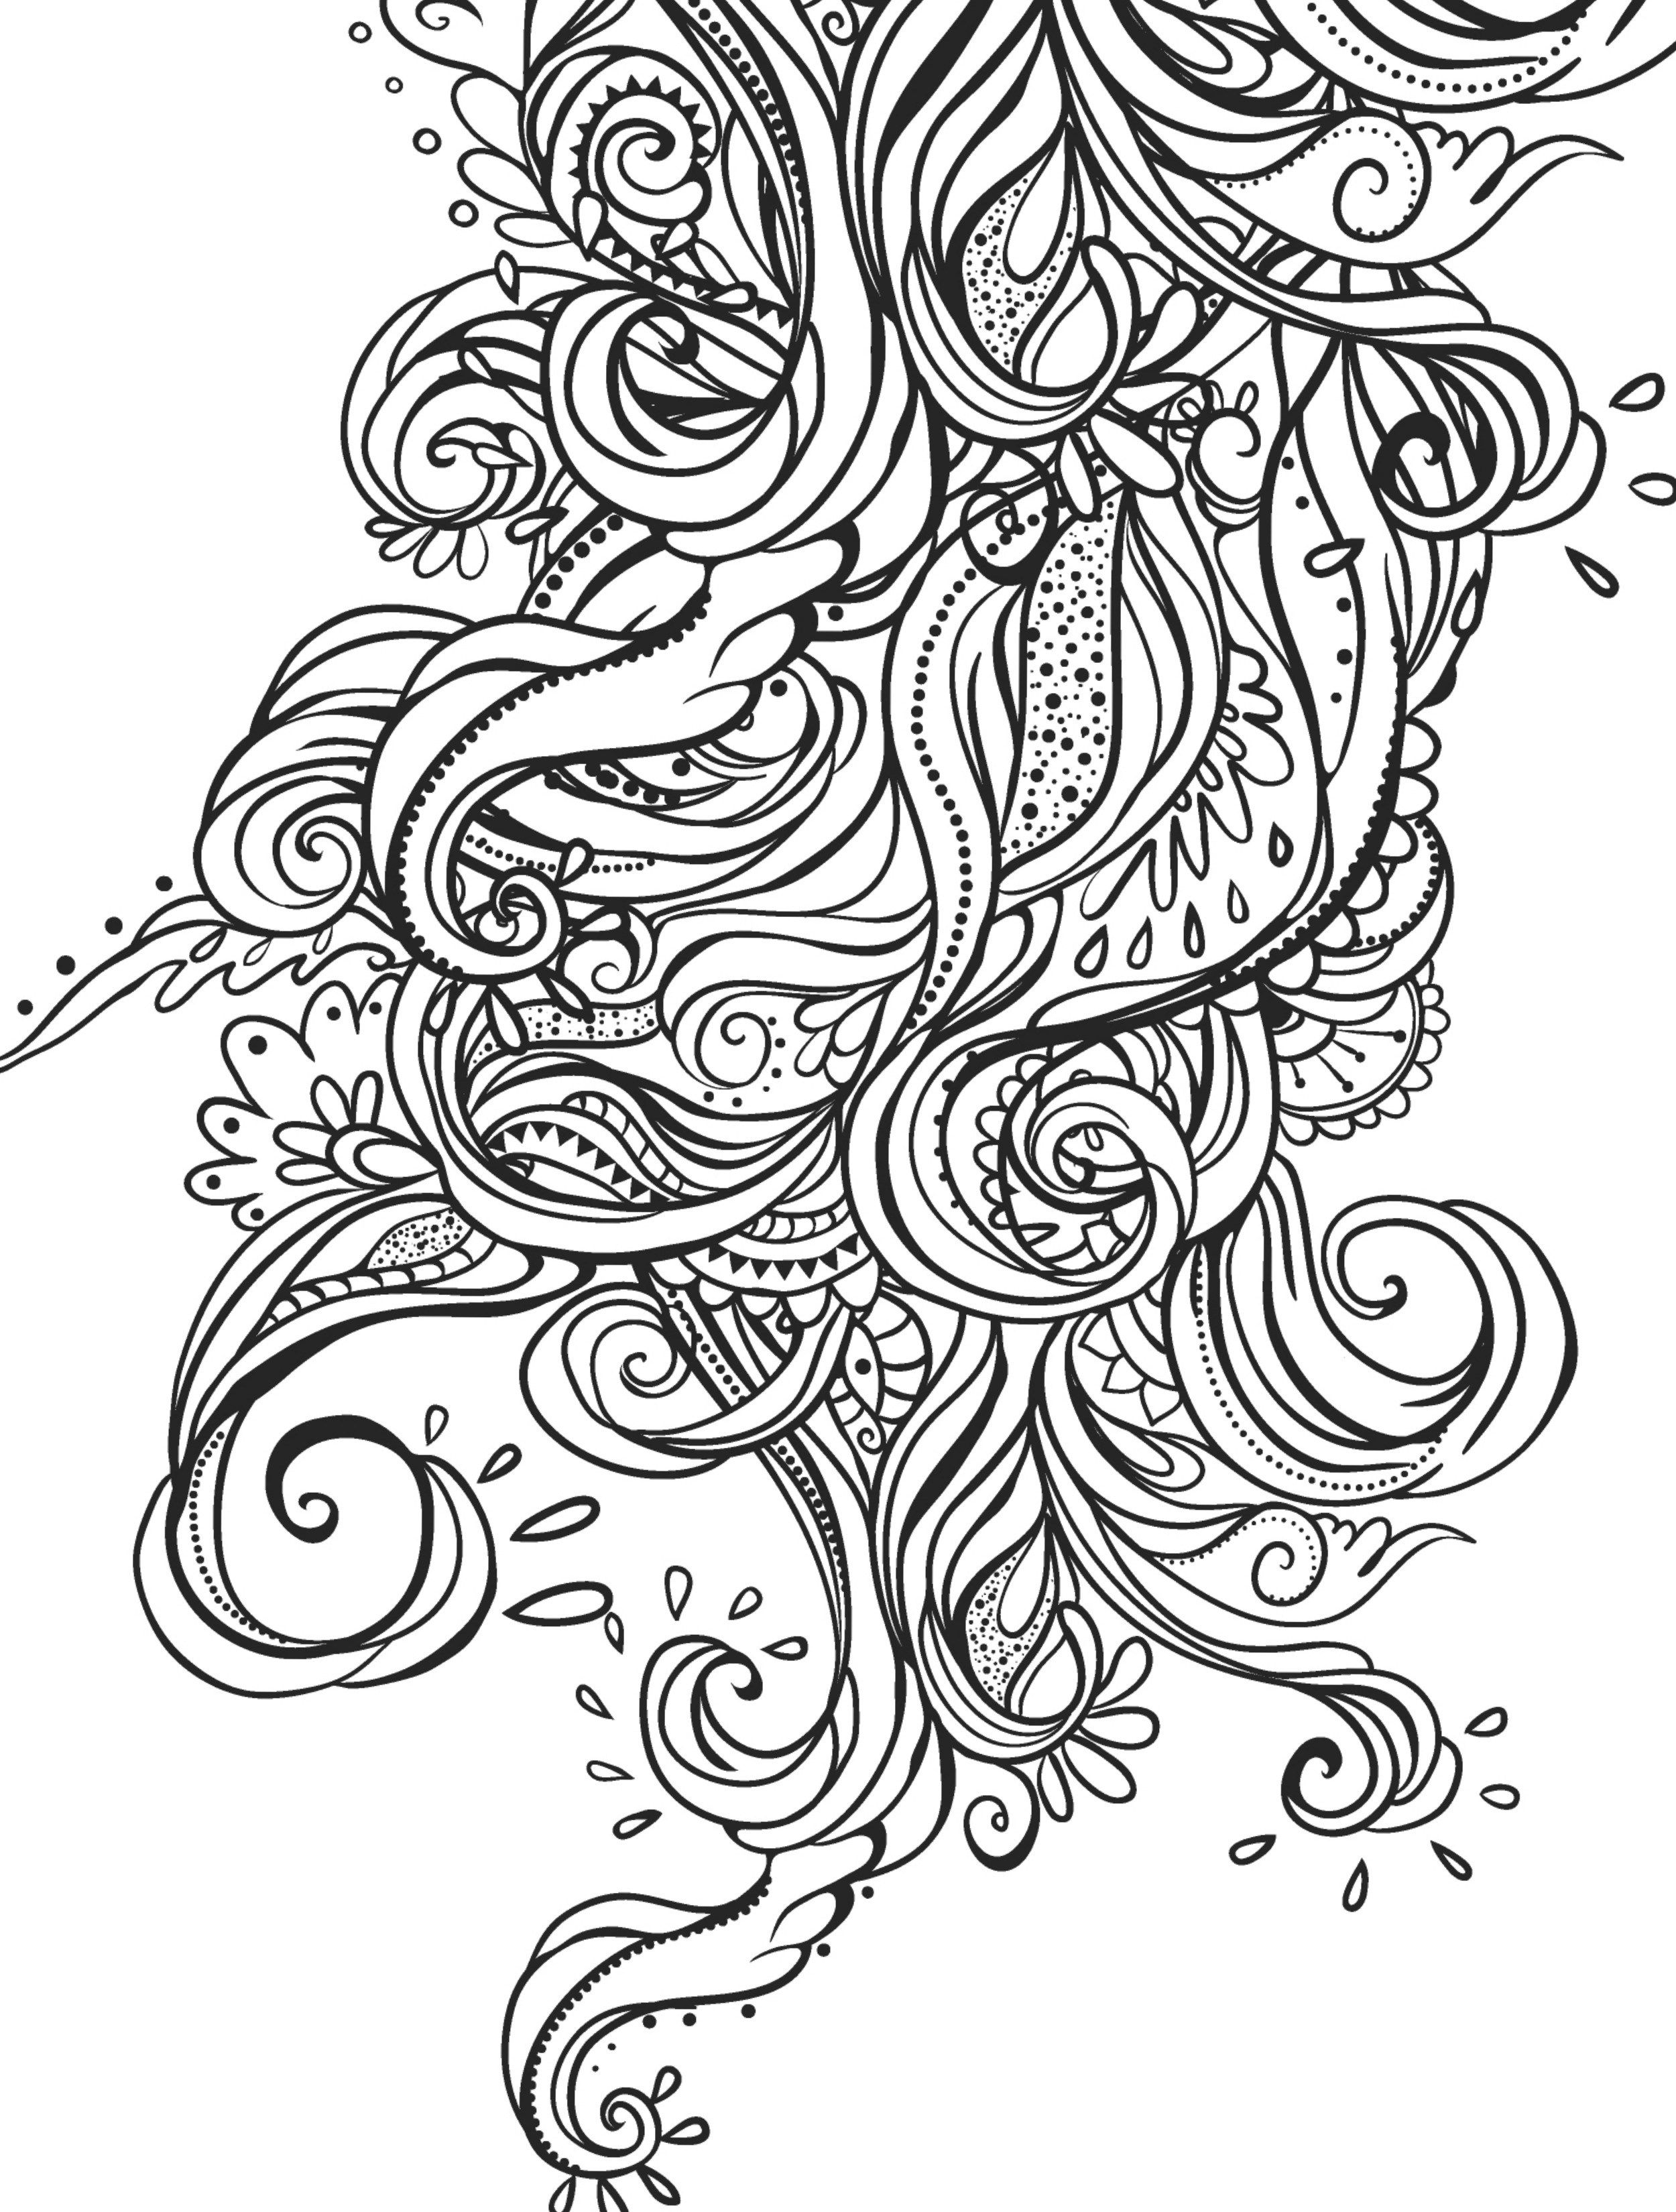 Free coloring pages of peacock feathers coloring everyday printable - 15 Crazy Busy Coloring Pages For Adults Page 5 Of 16